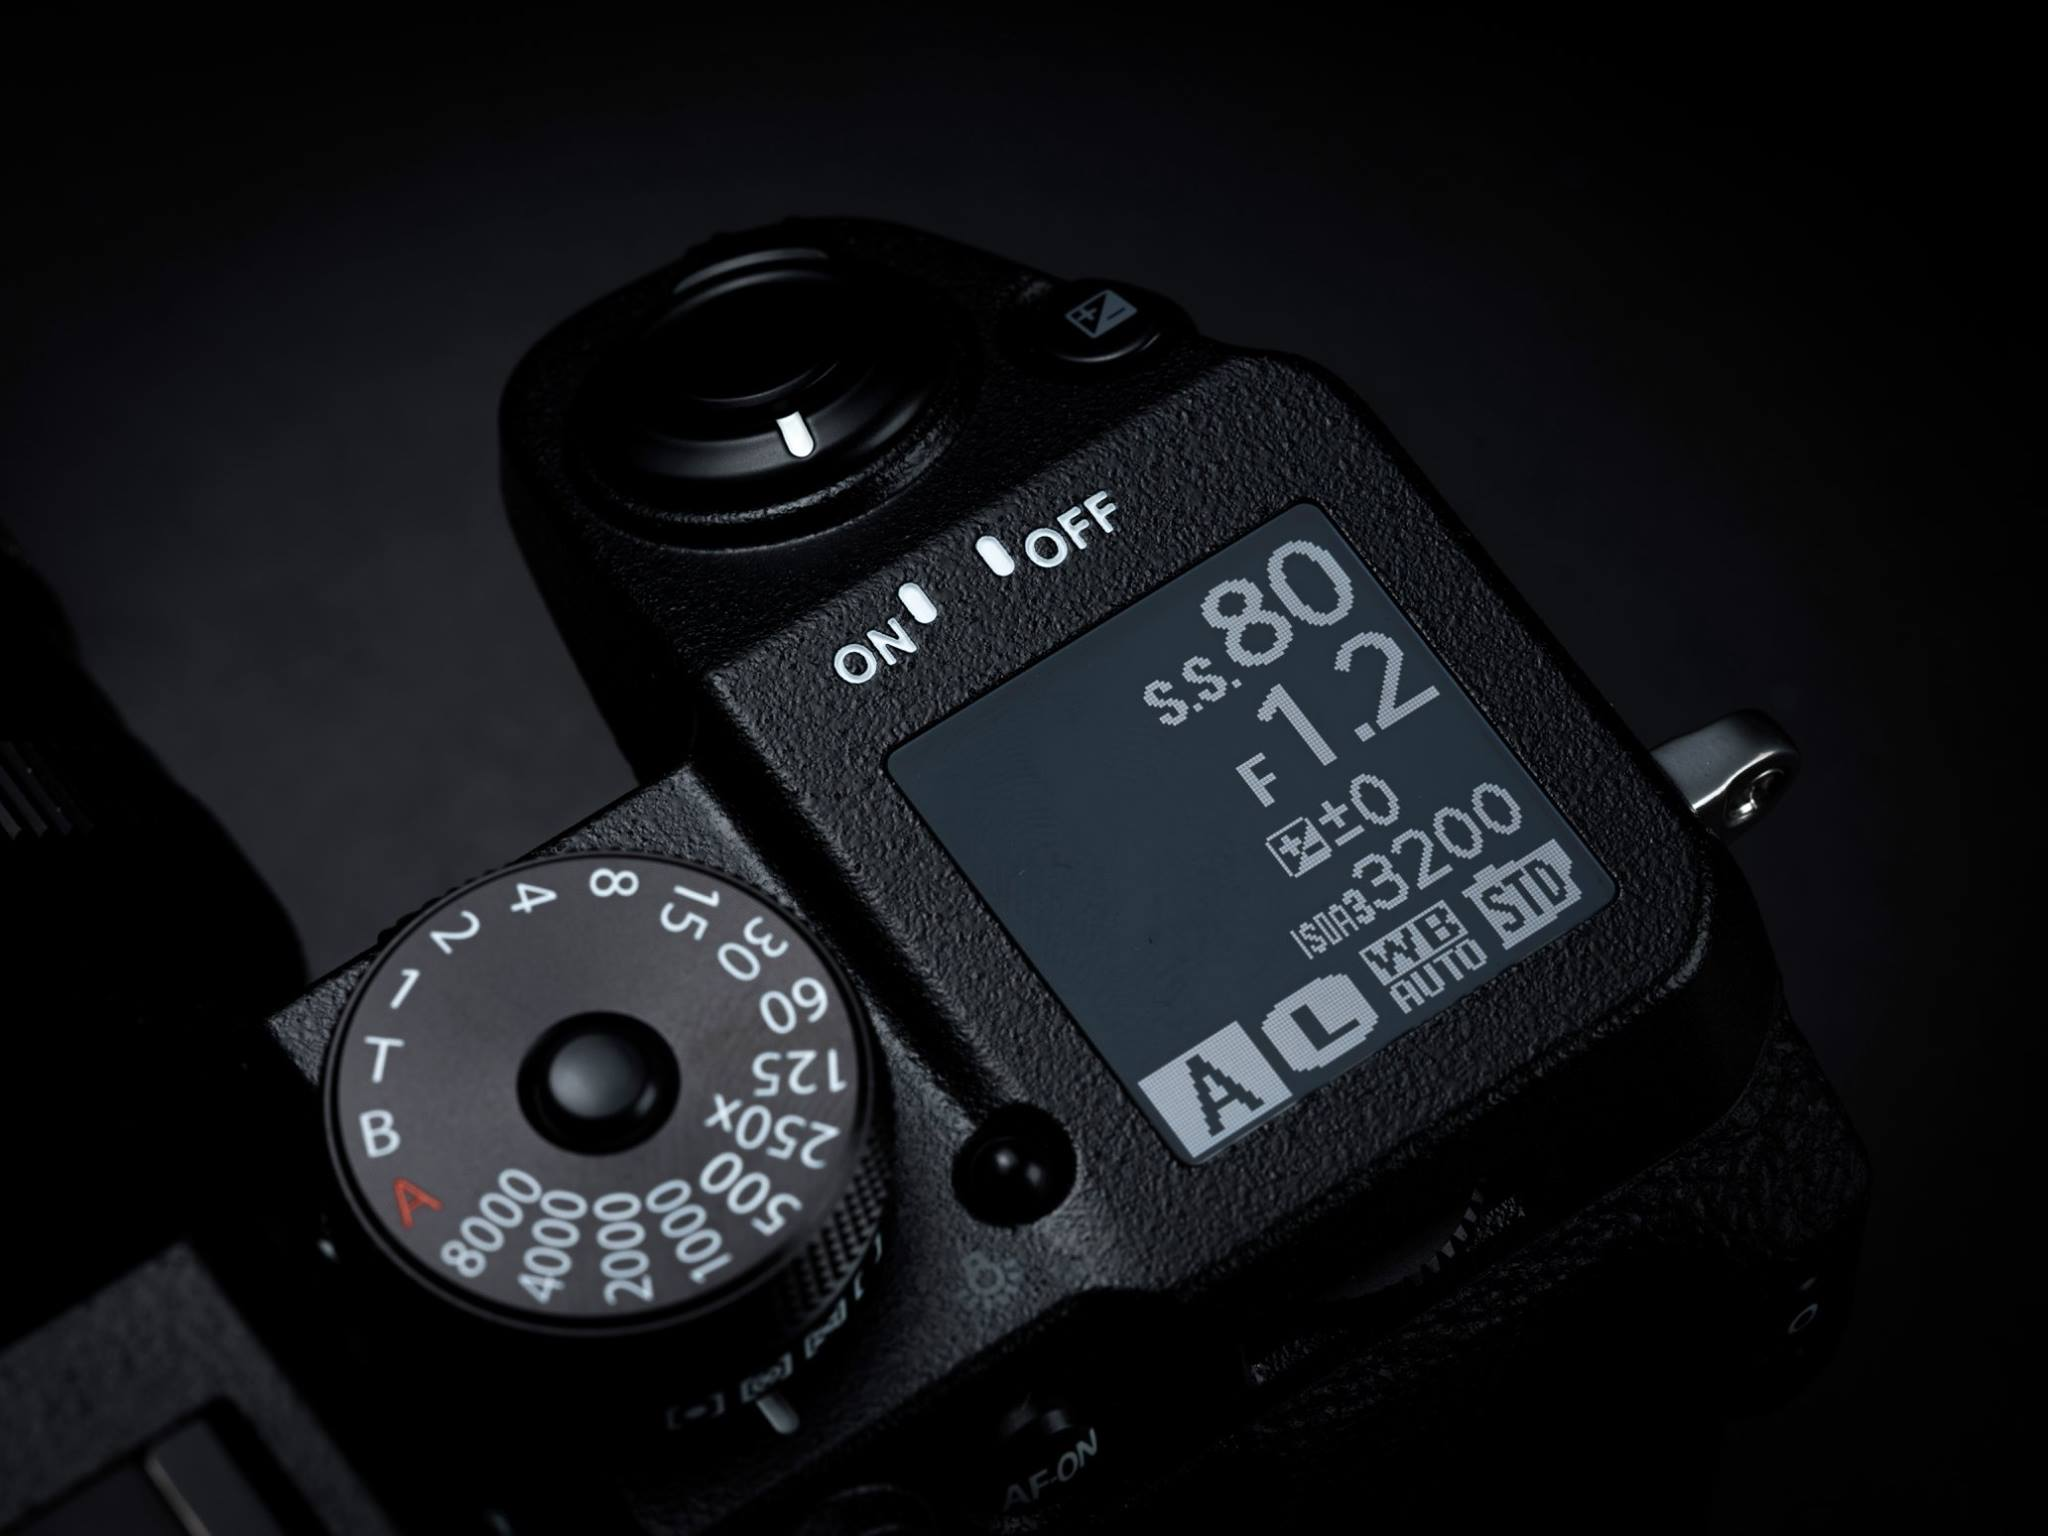 Fuji X-H1 - Top display